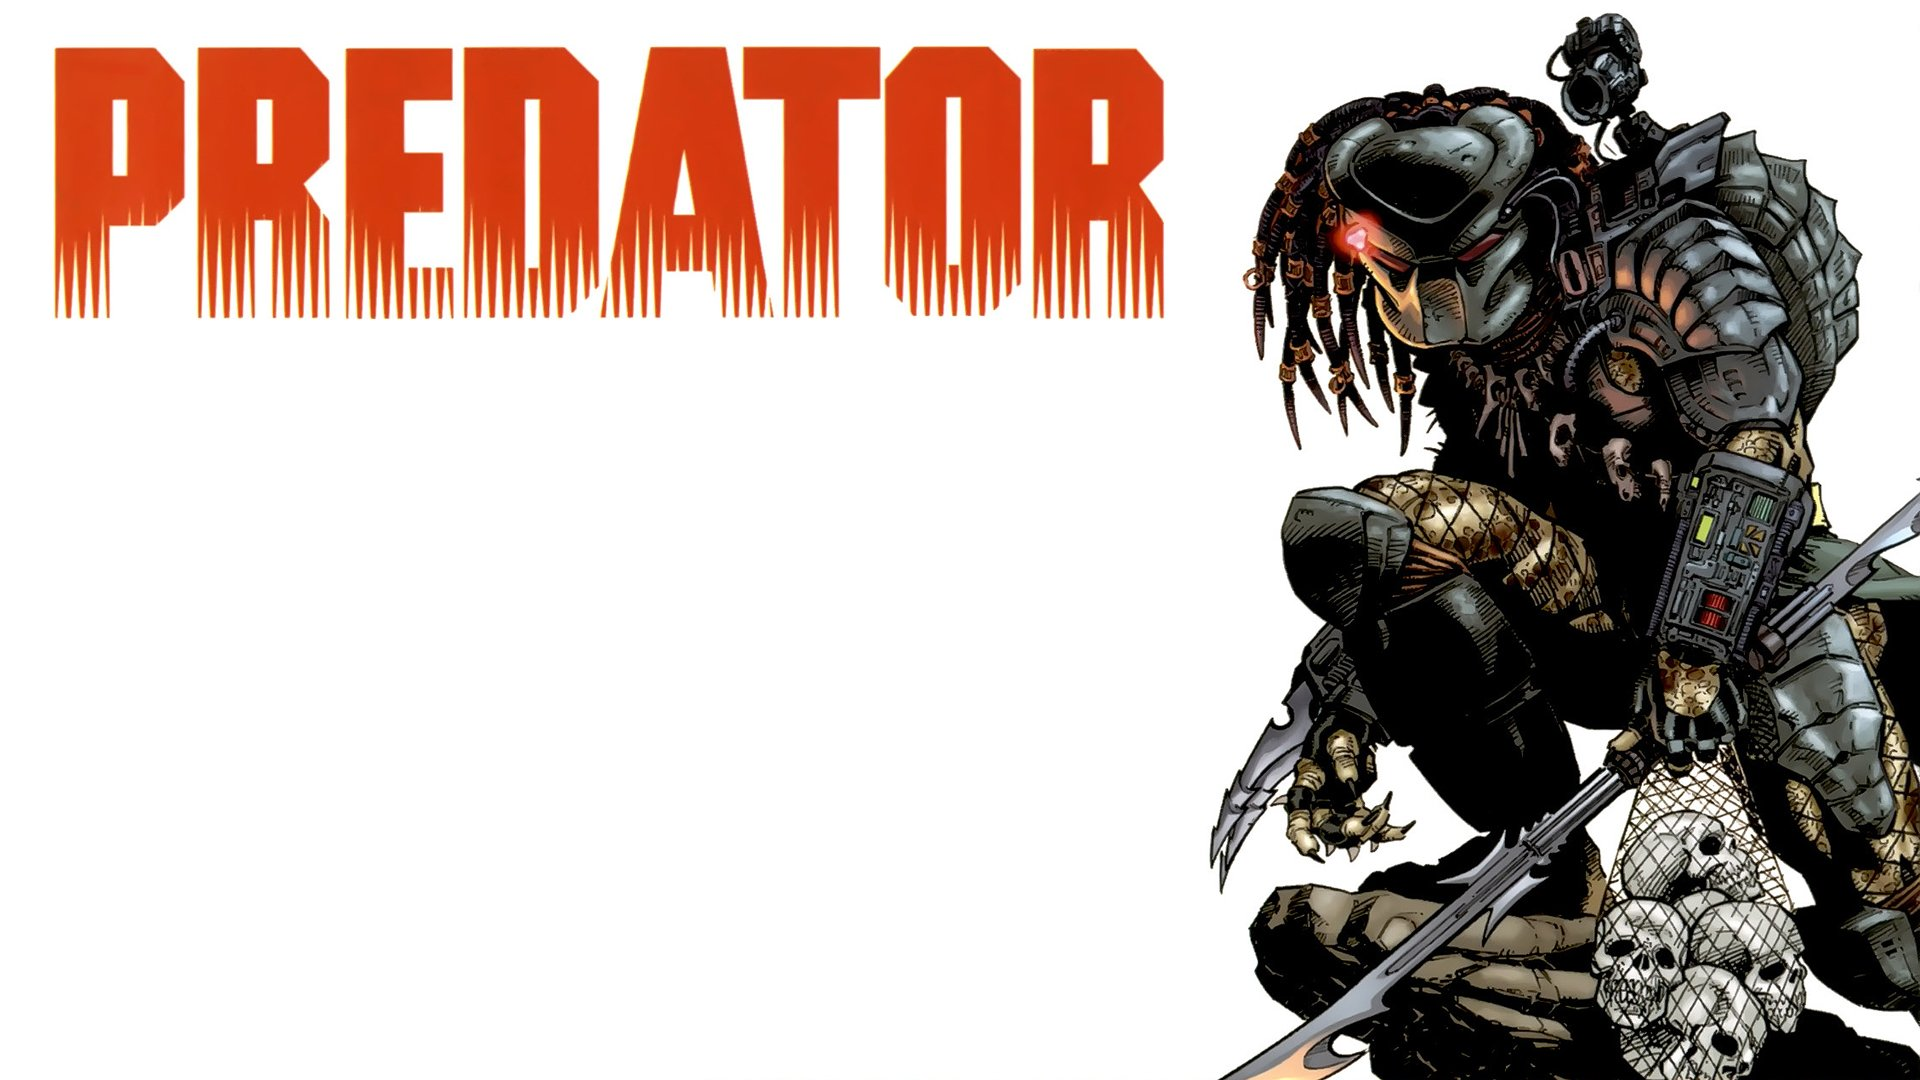 predator full hd wallpaper and background image | 1920x1080 | id:621217